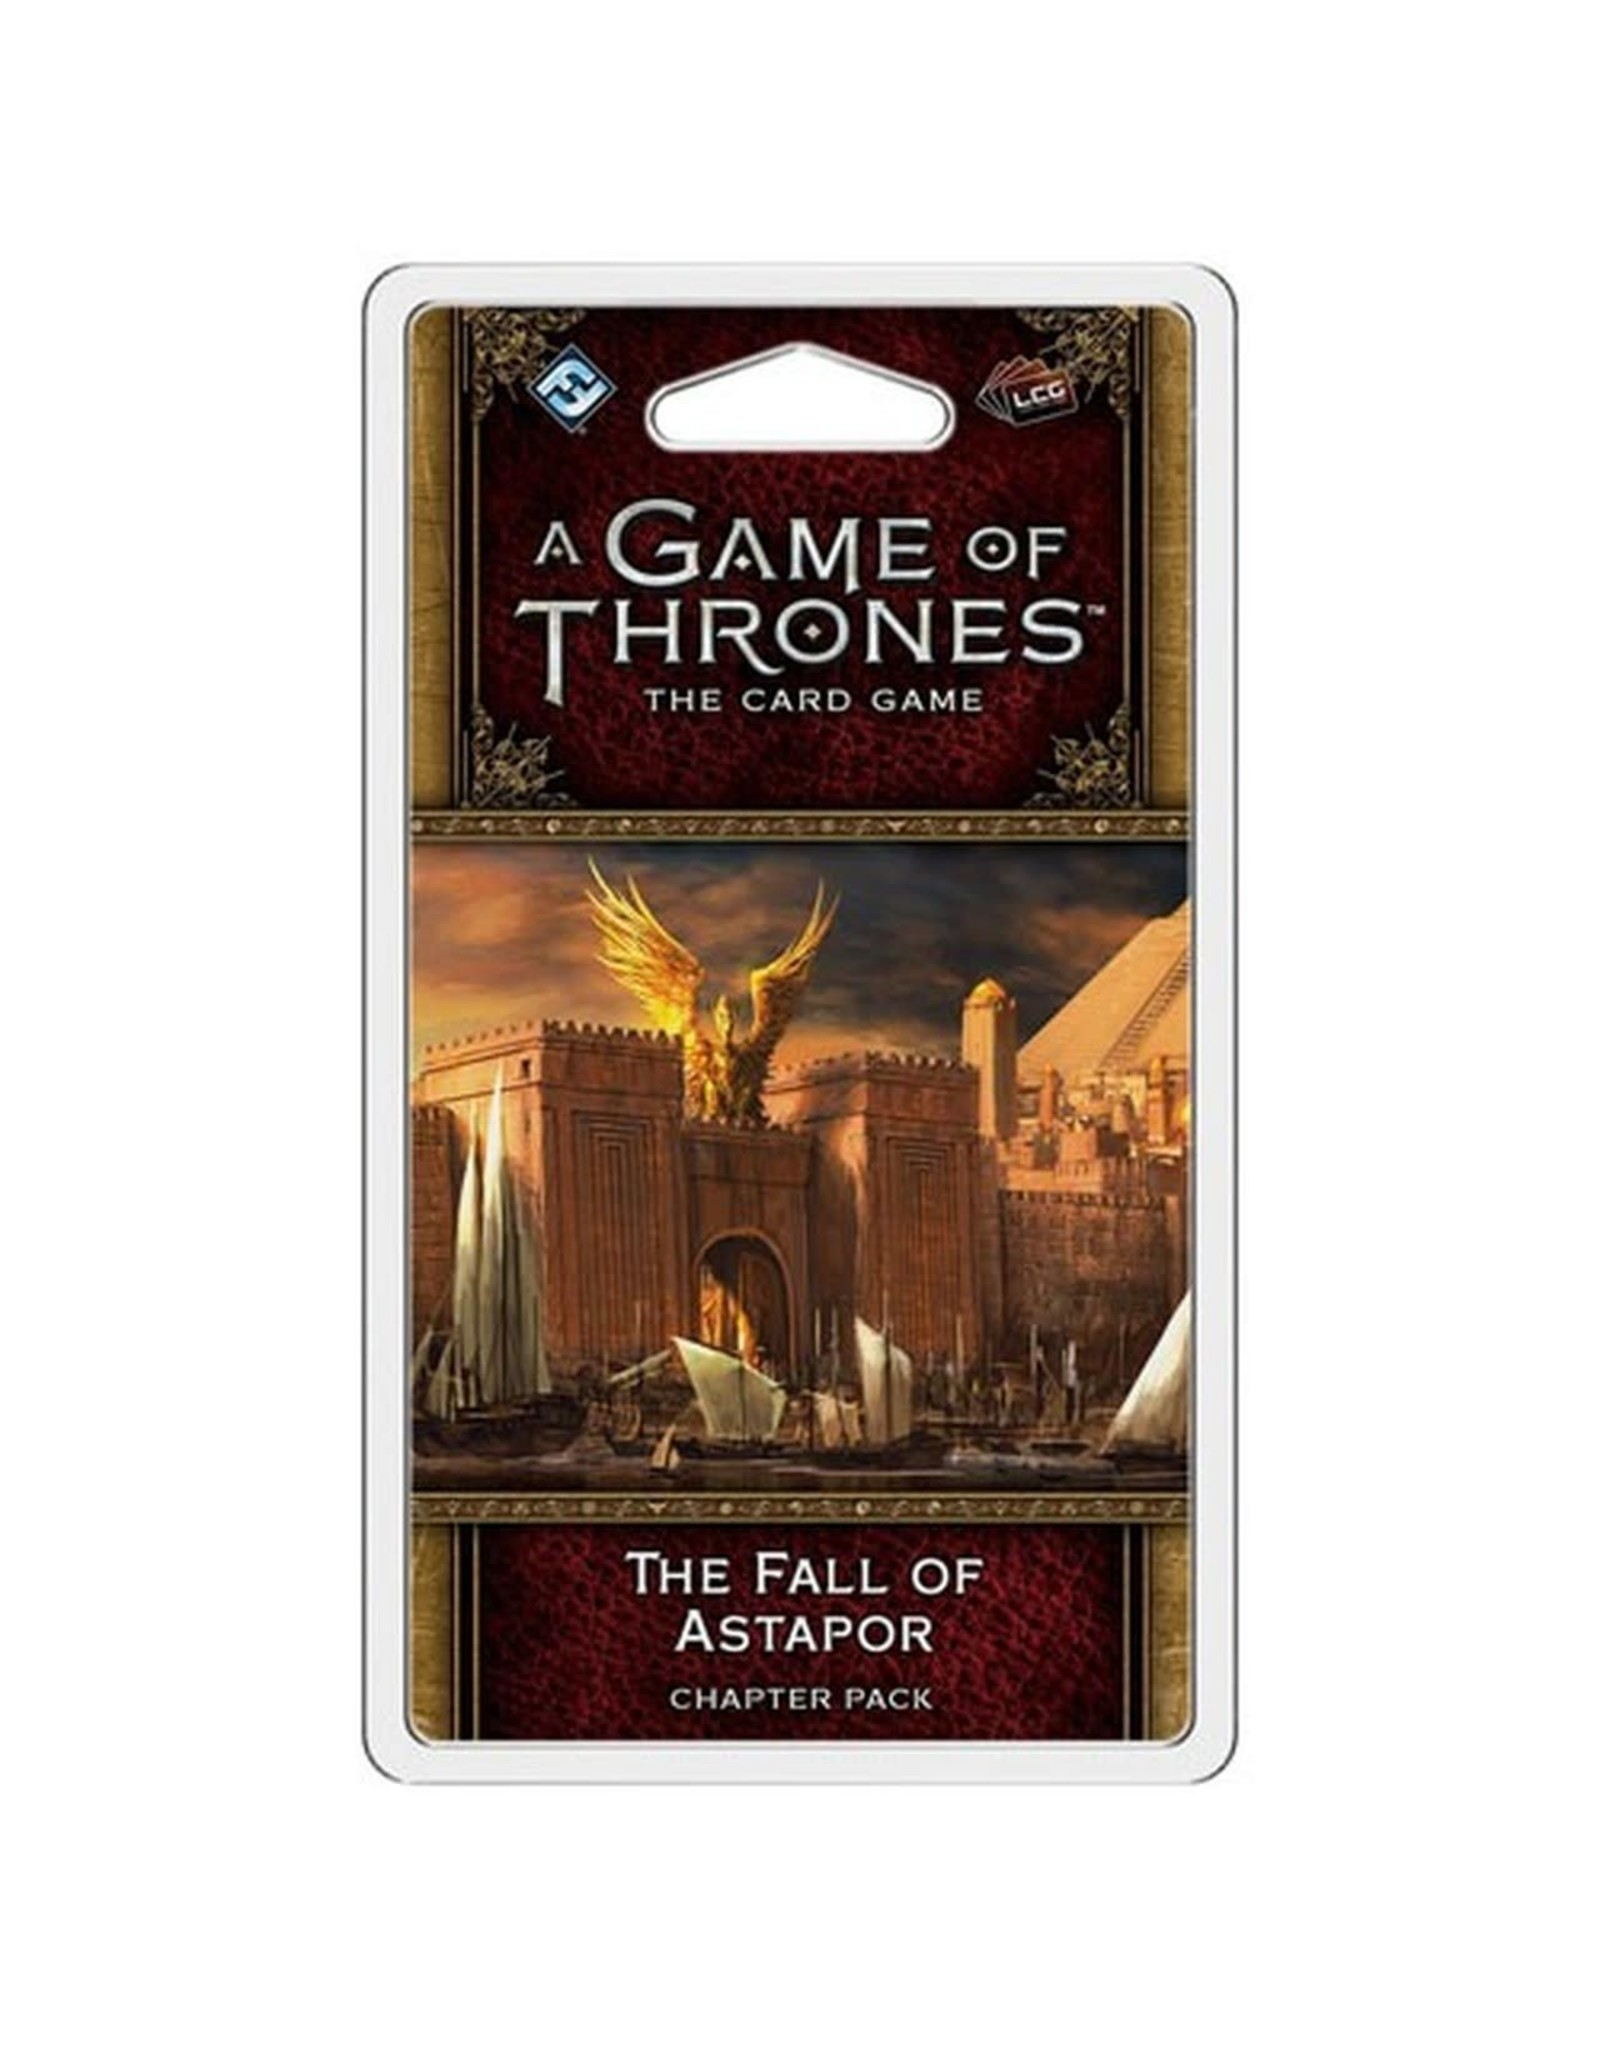 Game of Thrones LCG The Fall of Astapor Chapter Pack